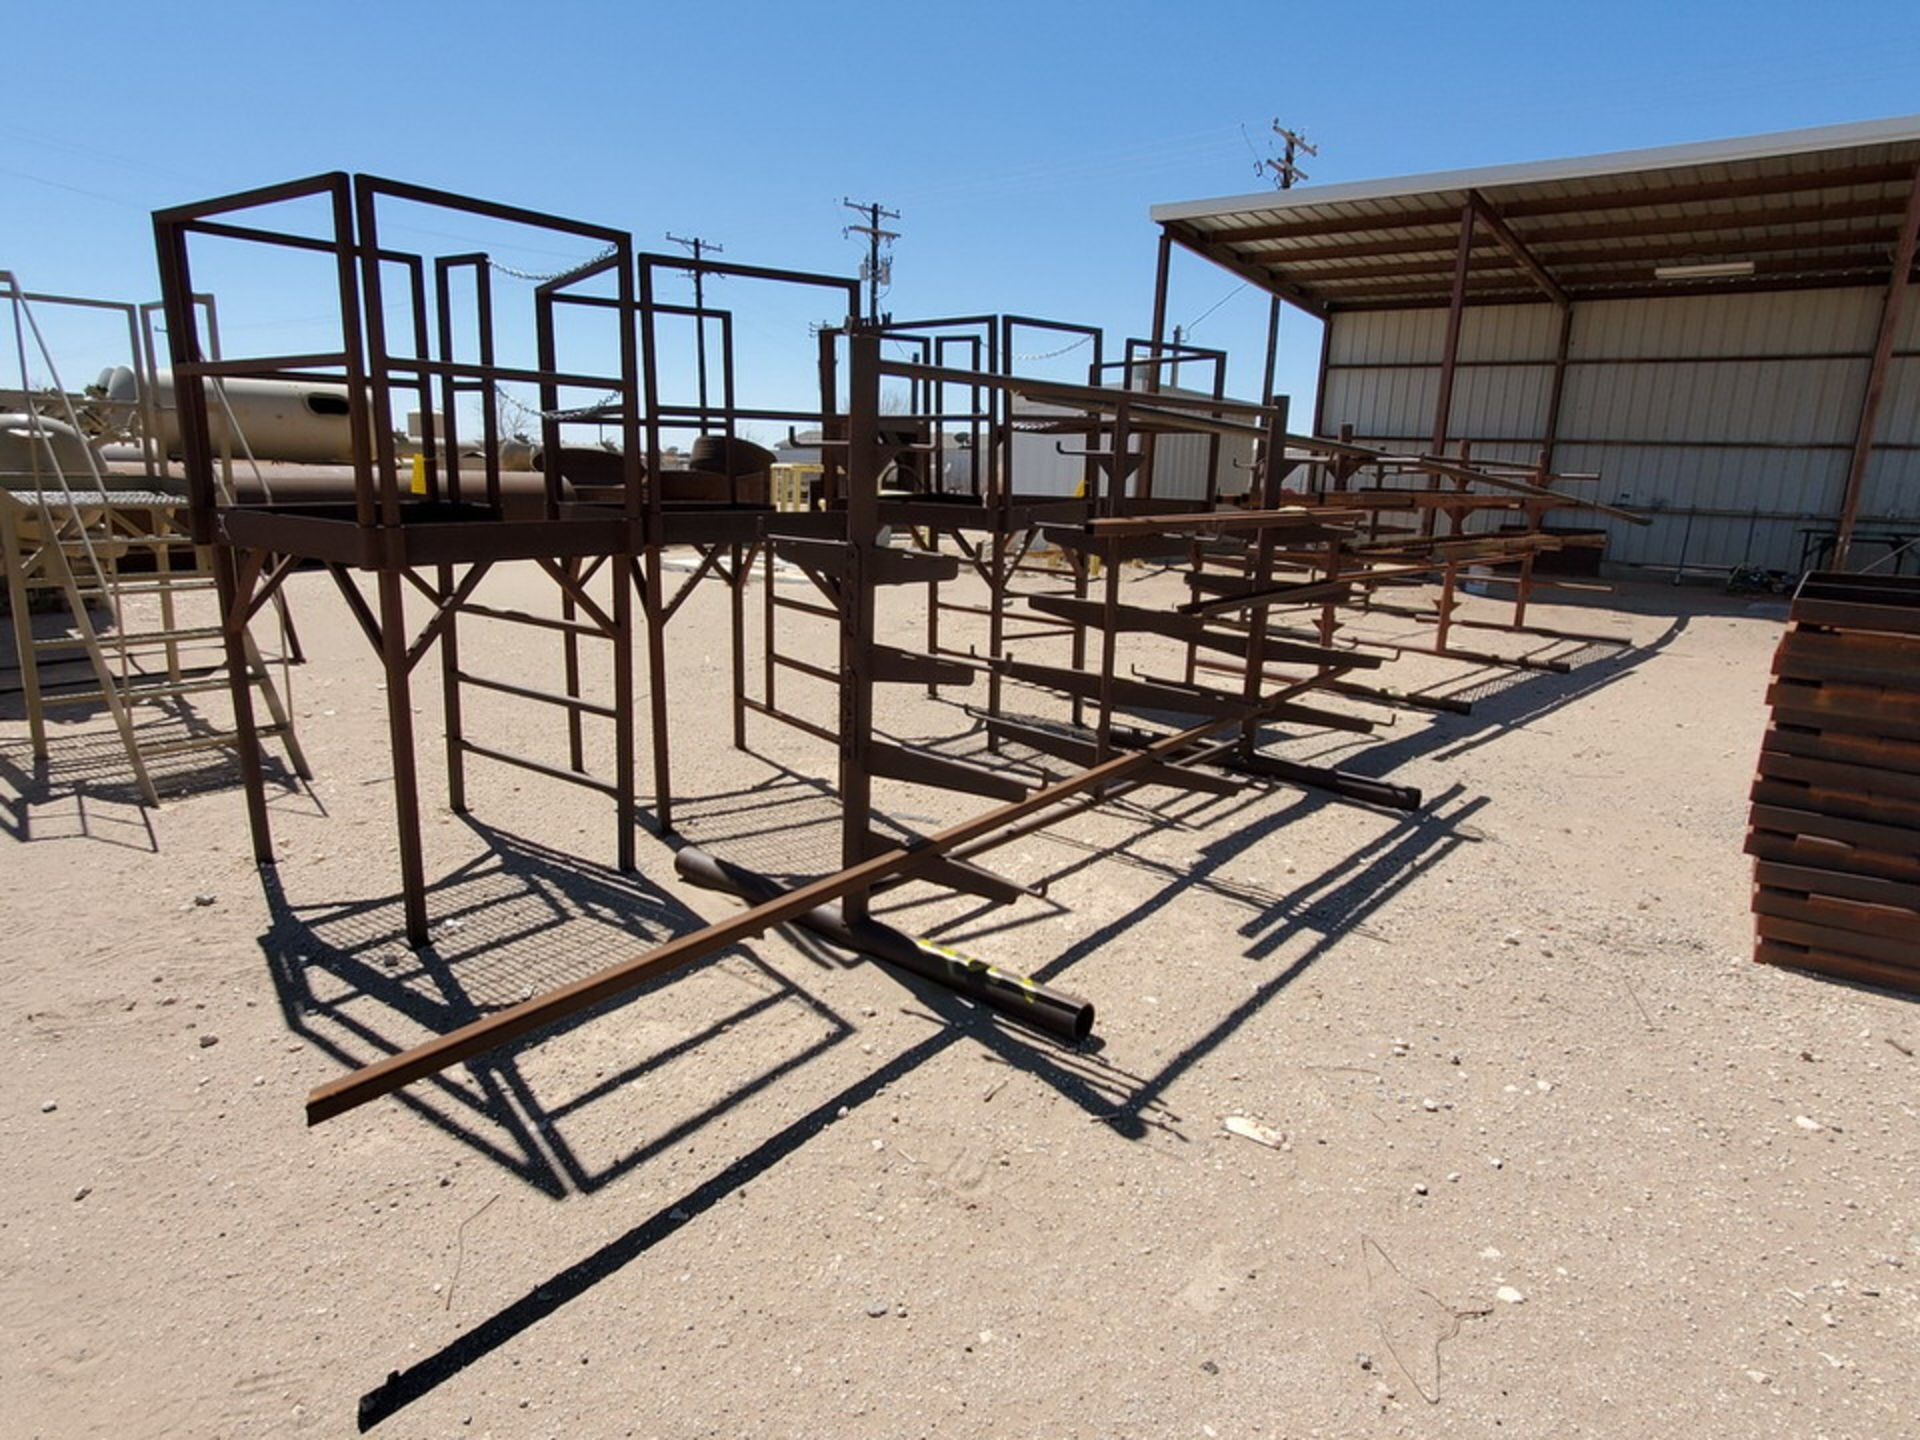 """(3) 3-Post Doublesided Cantilever Racks (2) 10' x 6' x 6'6"""", (1) 17' x 7' x 6'6"""" - Image 3 of 17"""